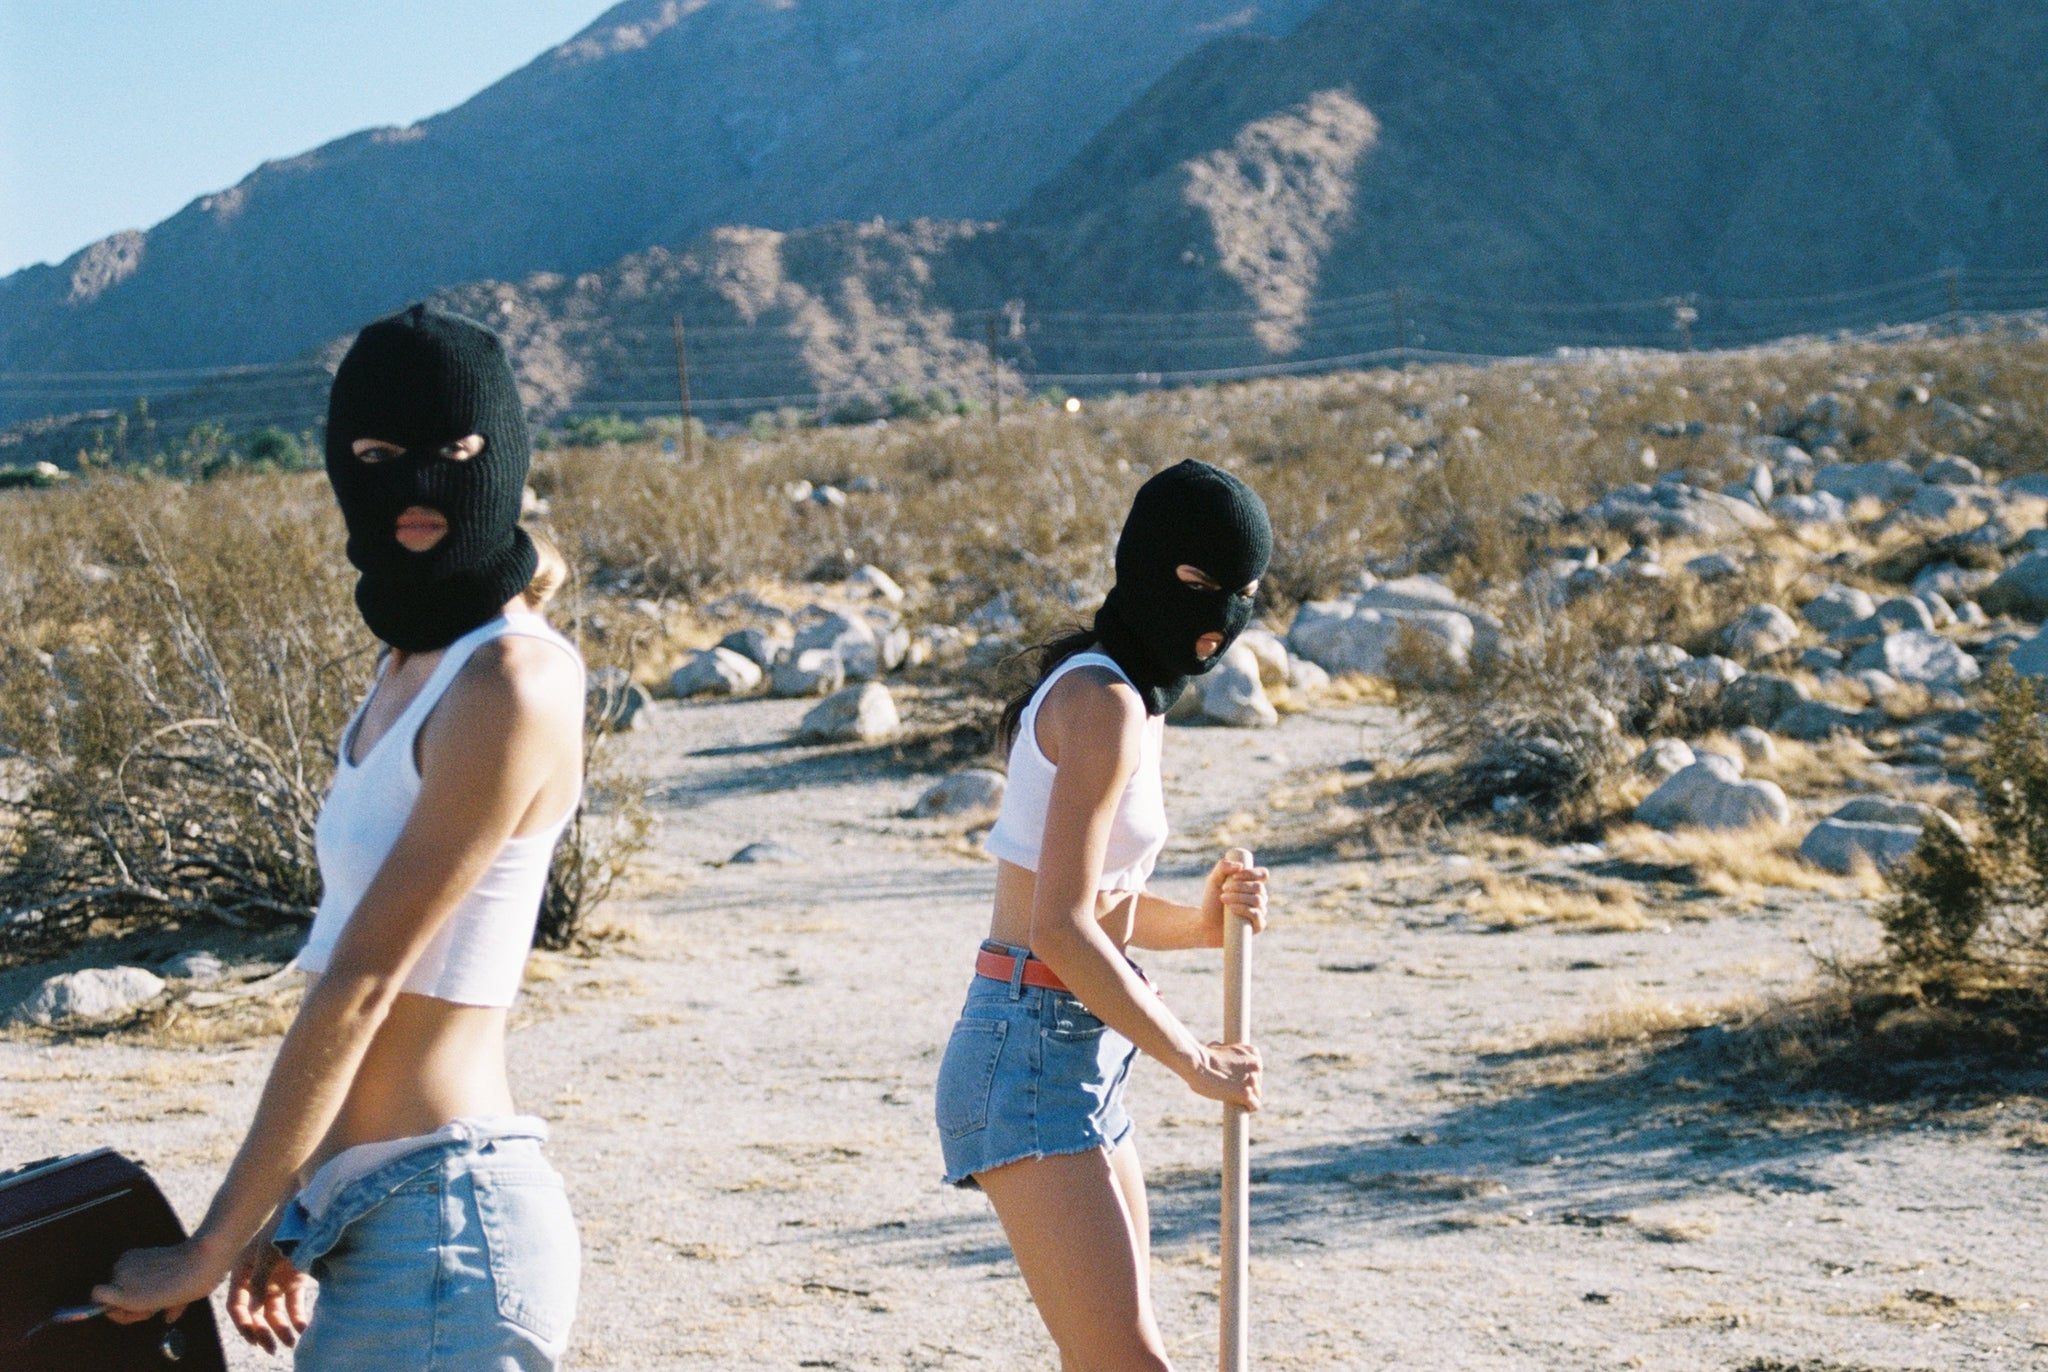 Thelma & Louise - Another Filthy Magazine - Photo 14